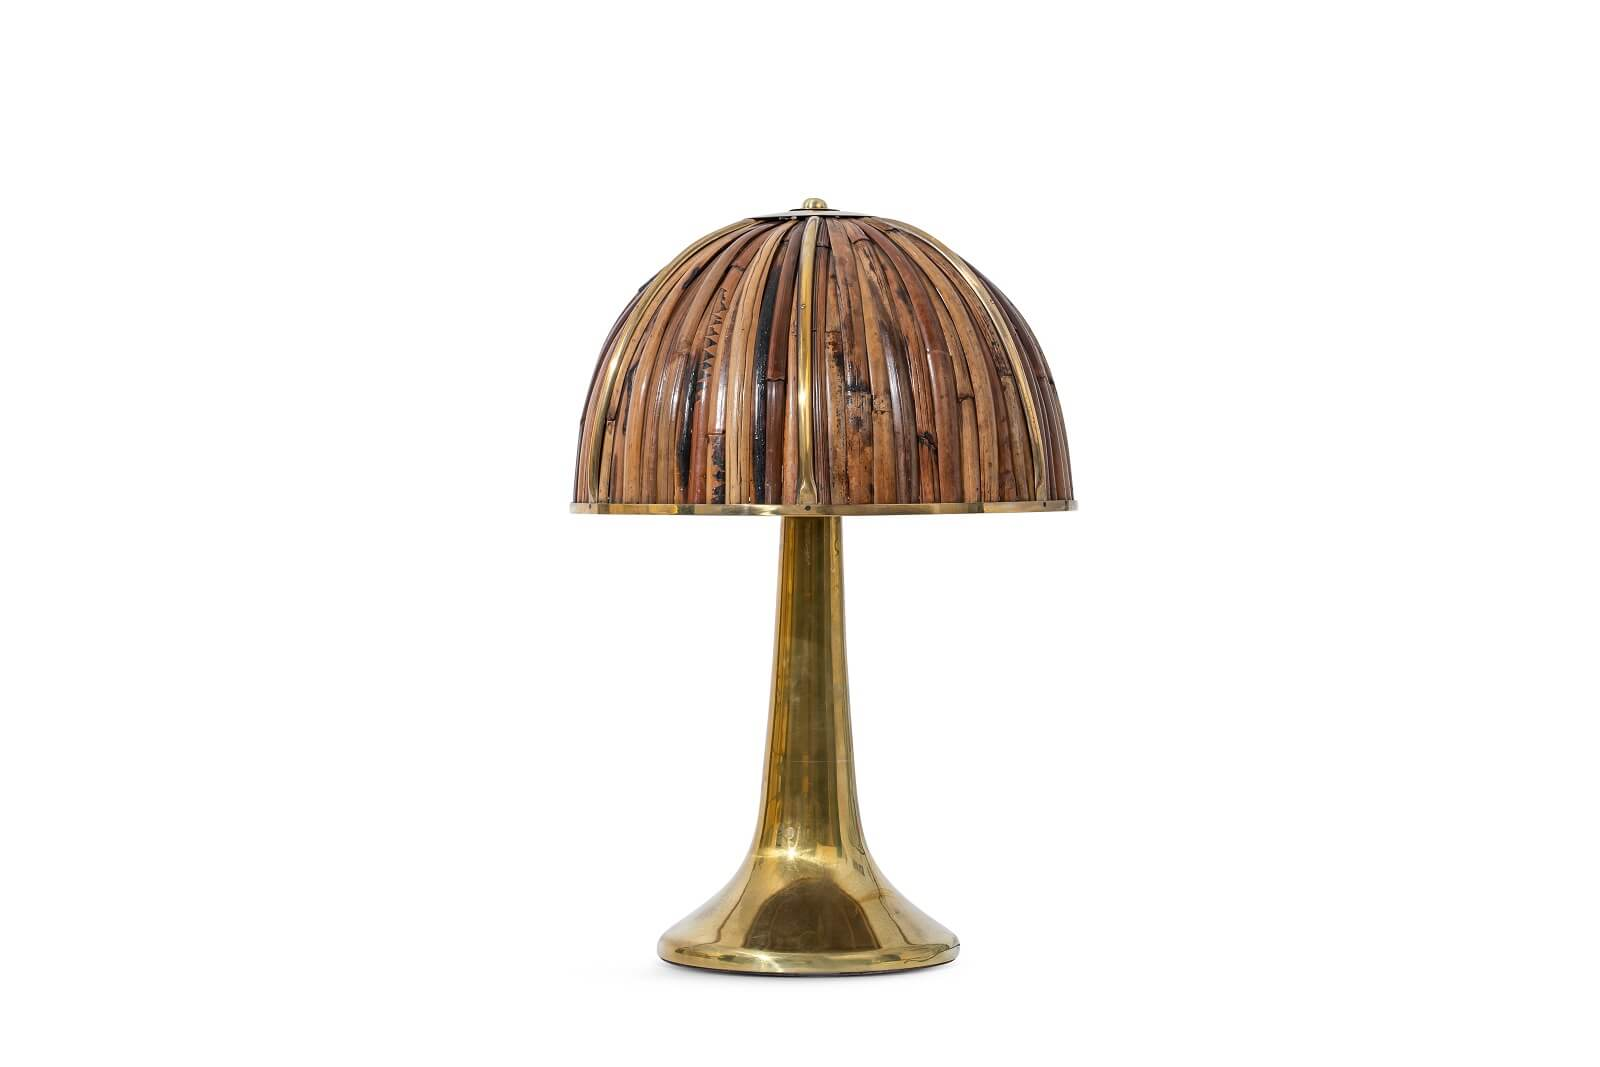 Table lamp Fungo by Gabriella Crespi for sale